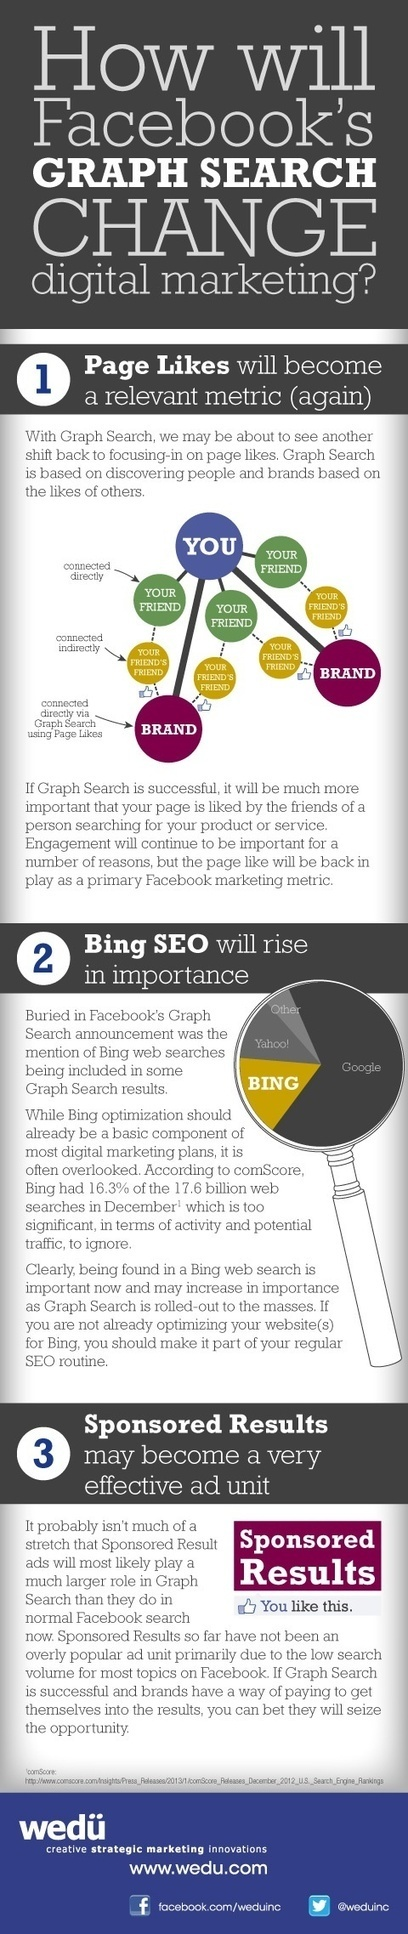 How will facebook's Graph Search Change Digital Marketing | Infographics | SOCIAL MEDIA MARKETING TIPS | Scoop.it